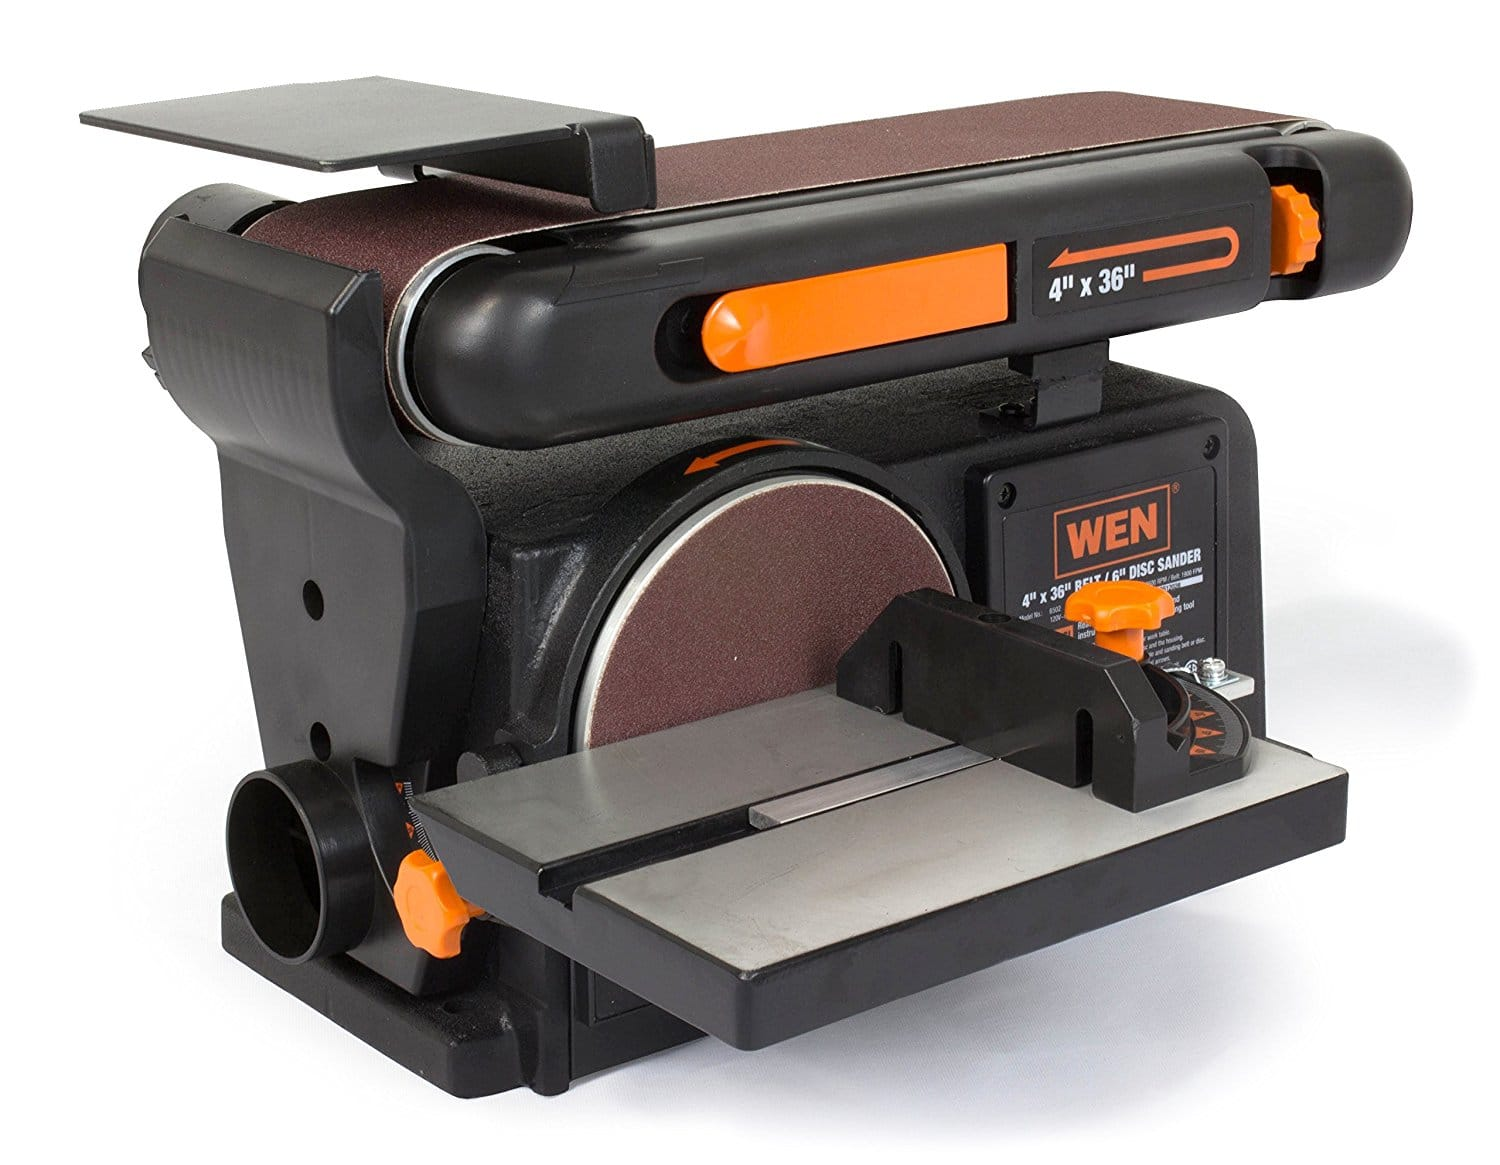 WEN 6502 4 x 36-Inch Belt and 6-Inch Disc Sander with Cast Iron Base - $72.73 With Coupon